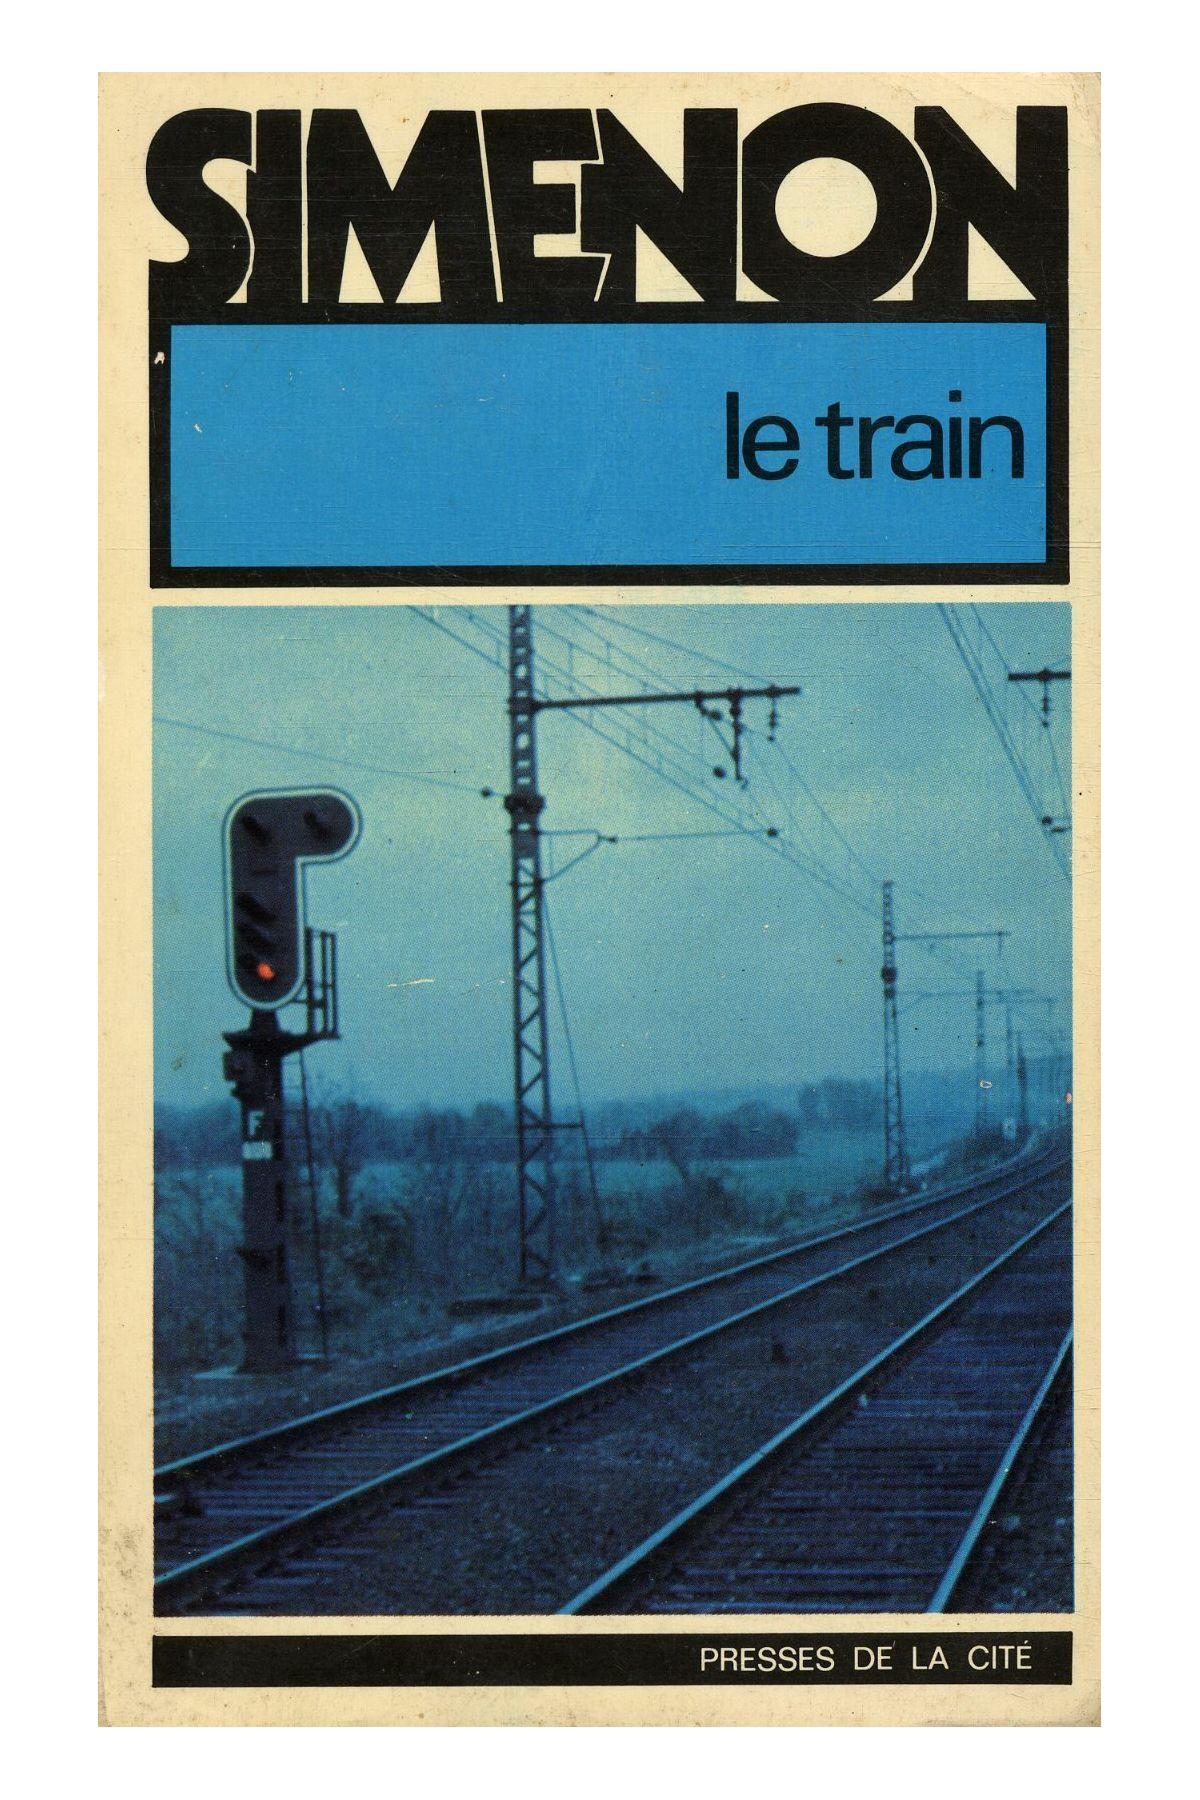 [Ebooks Audio] GEORGES SIMENON LE TRAIN